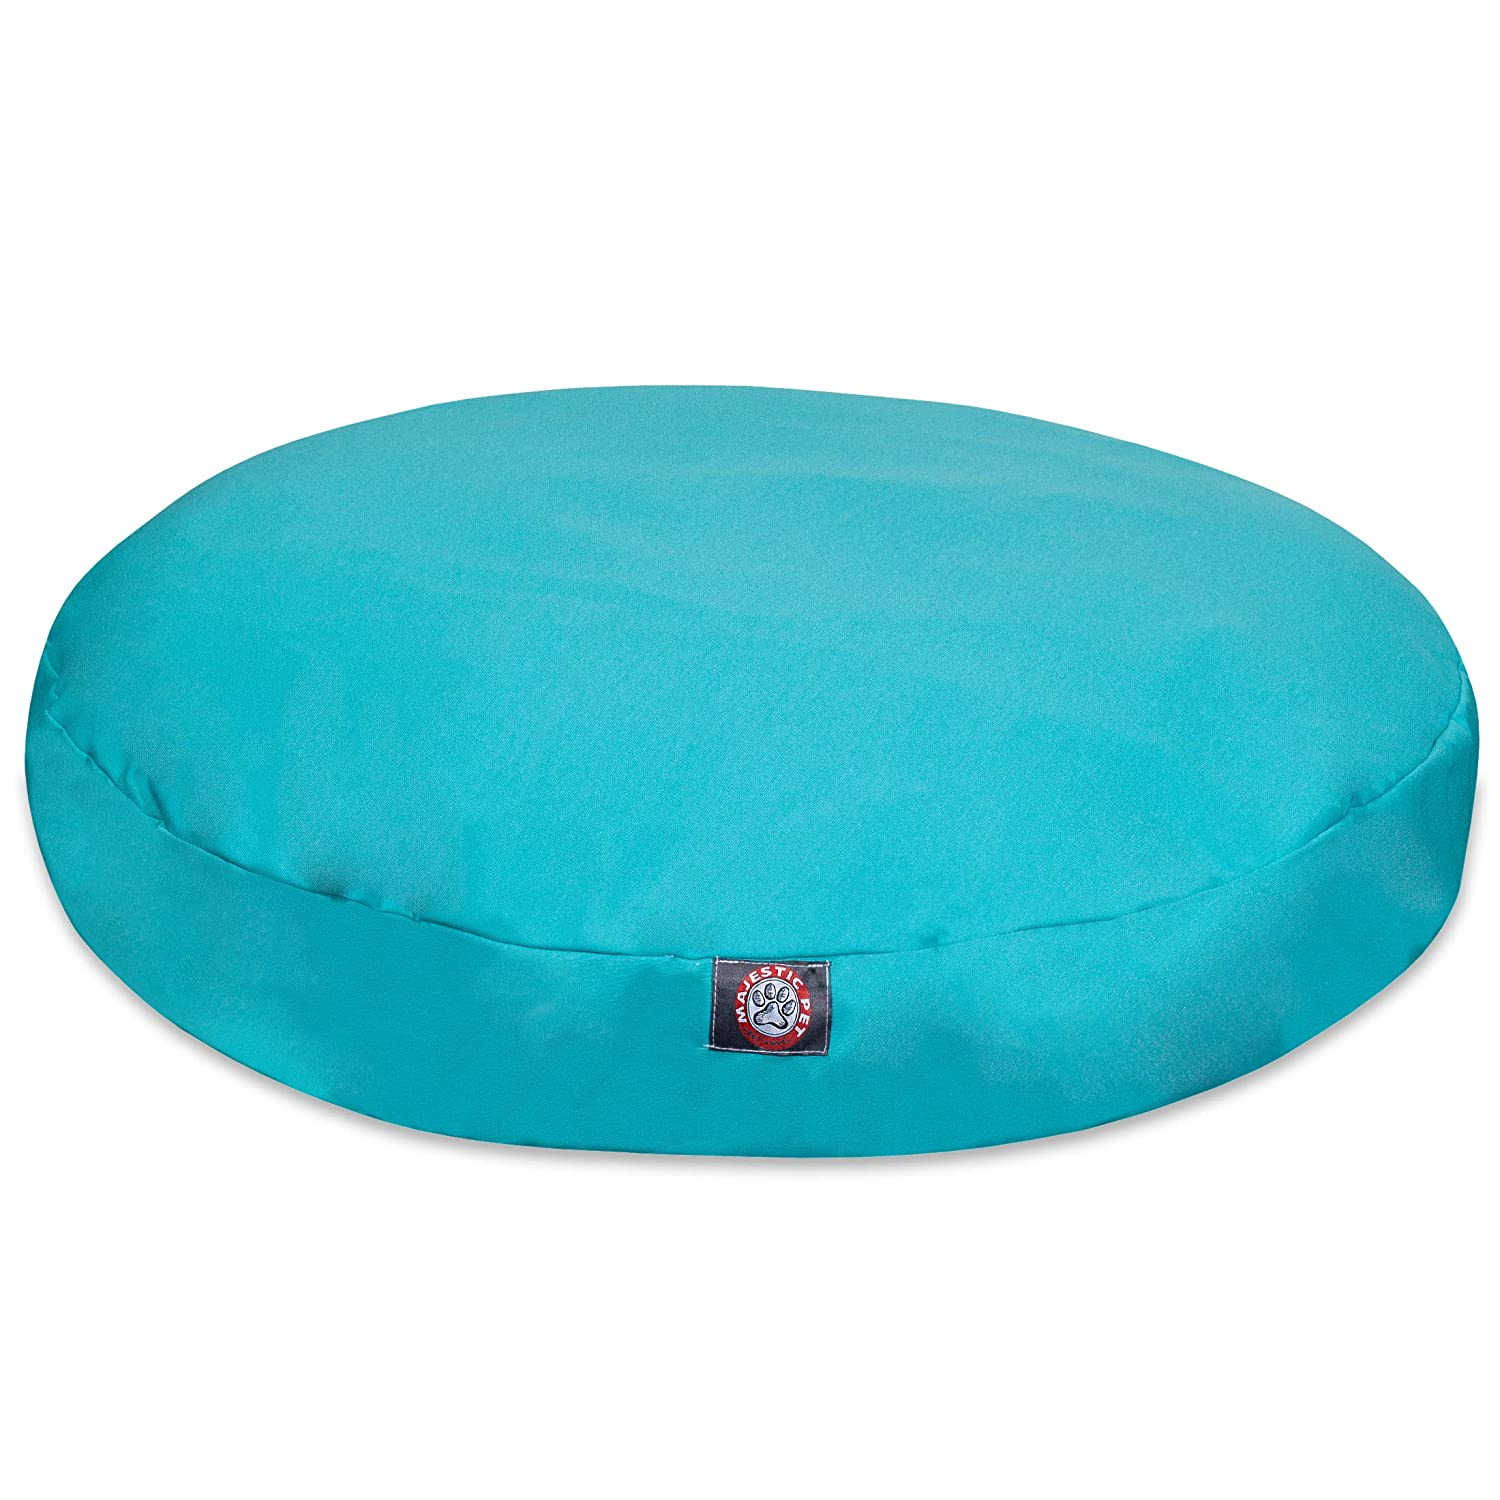 Majestic Pet Solid Teal Large Round Pet Bed